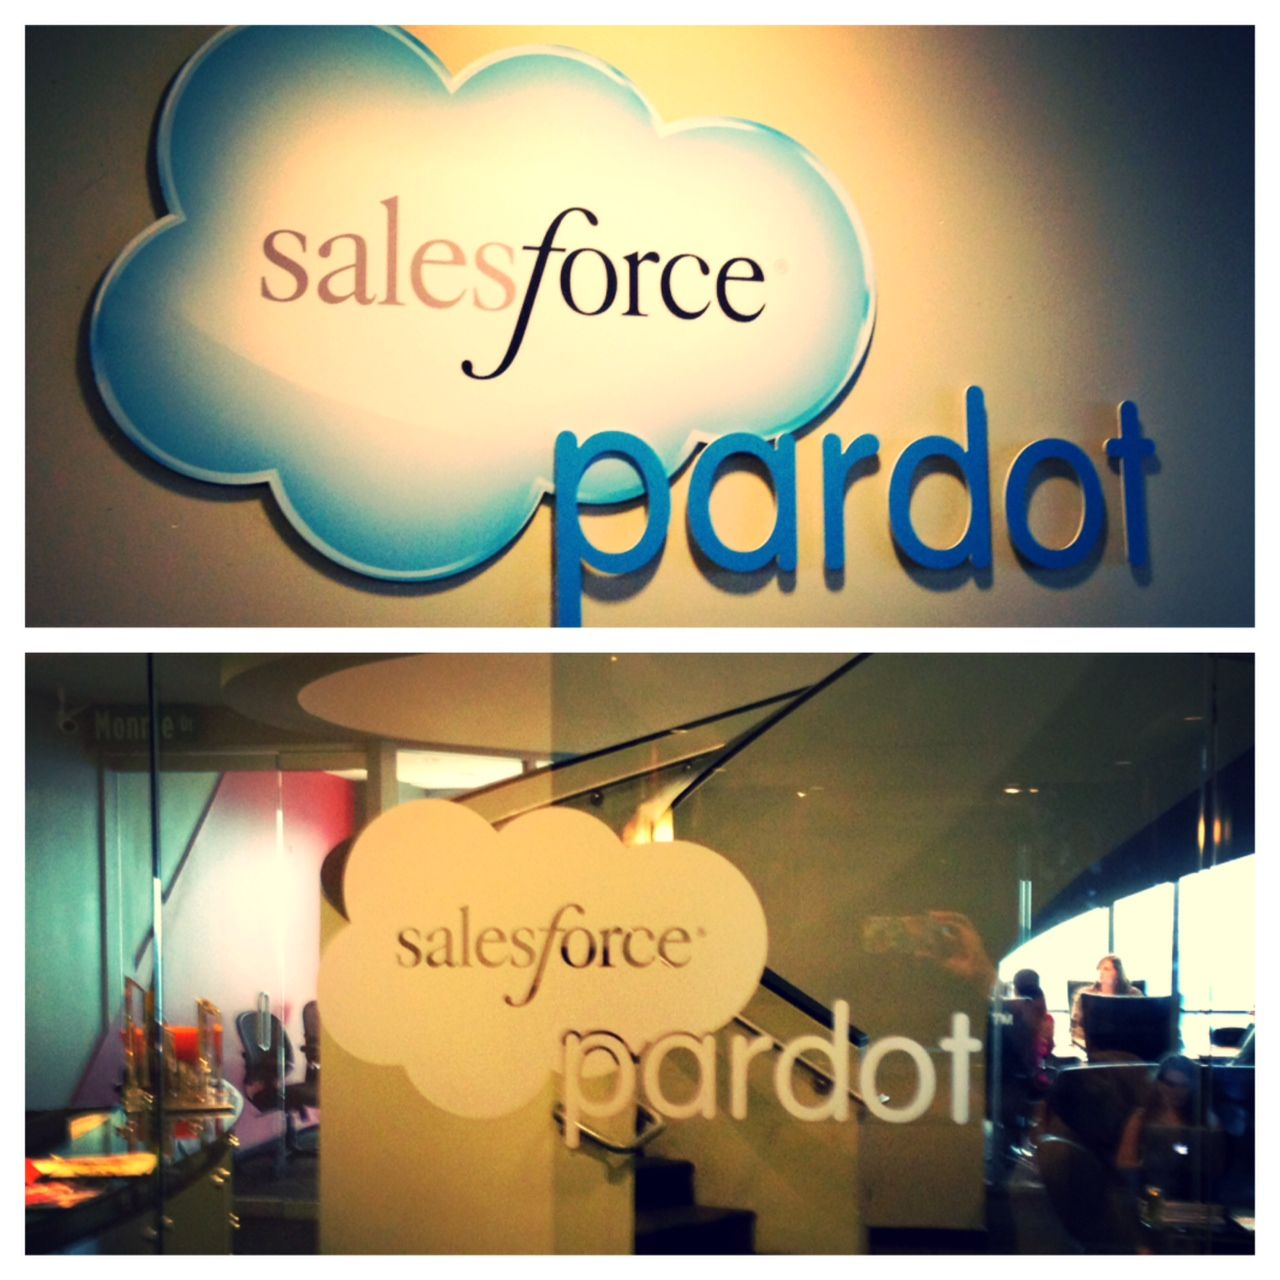 Rebranding continues in the Pardot office! Check out our new door and lobby decor.